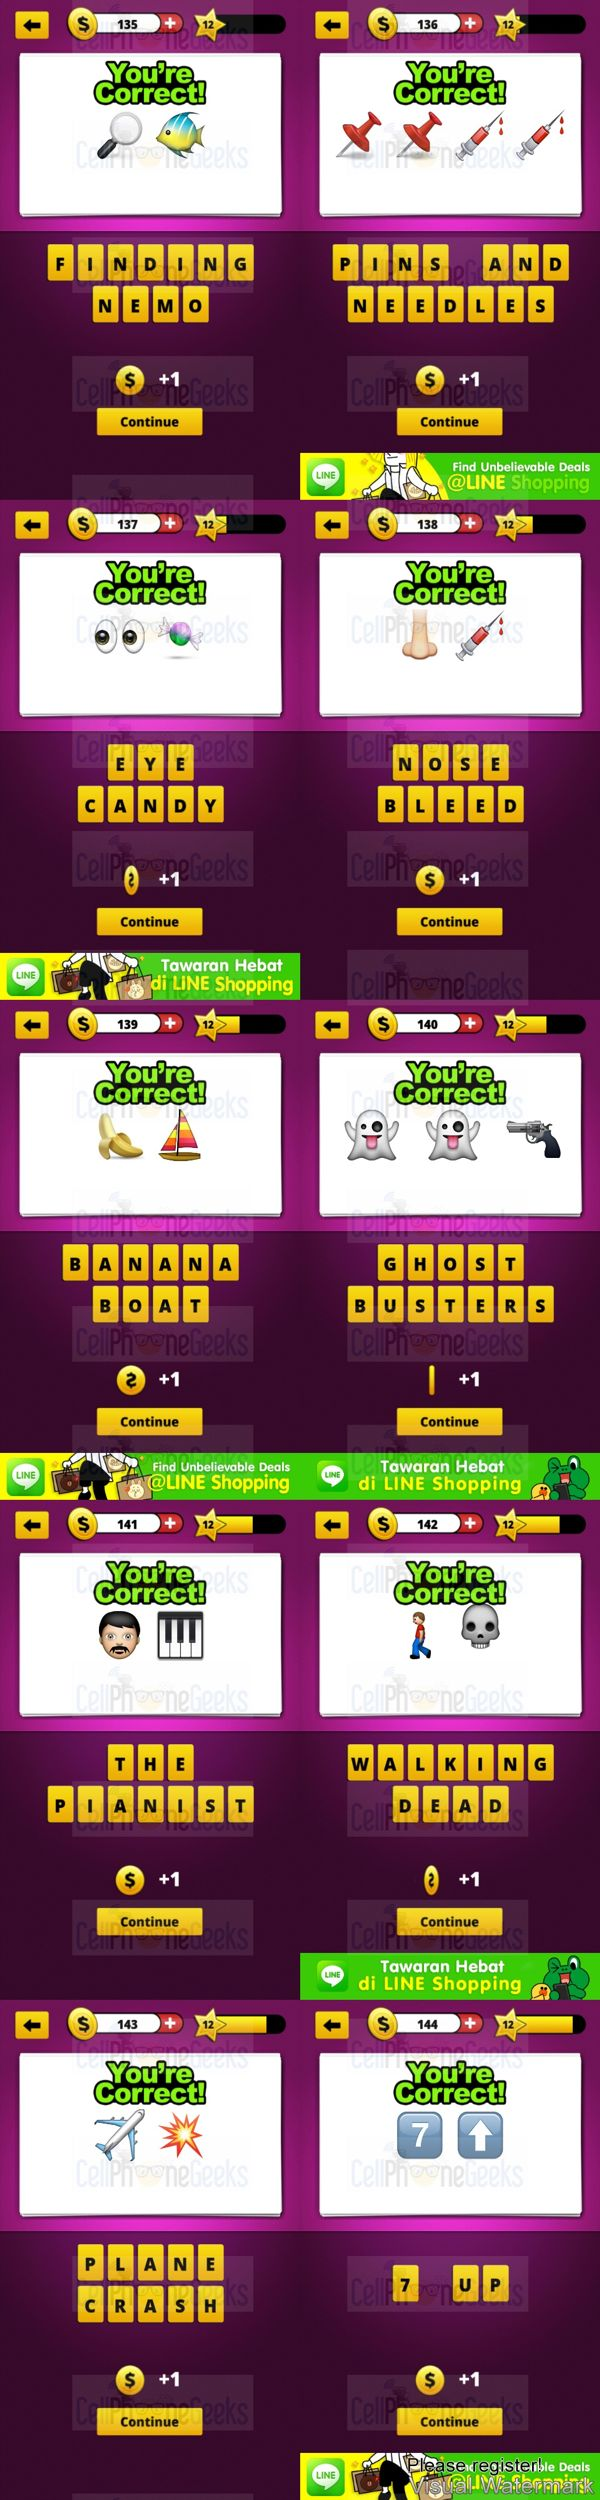 Guess The Emoji Level 12 Answers Cellphonegeeks Guess The Emoji Answers Guess The Emoji Emoji Answers